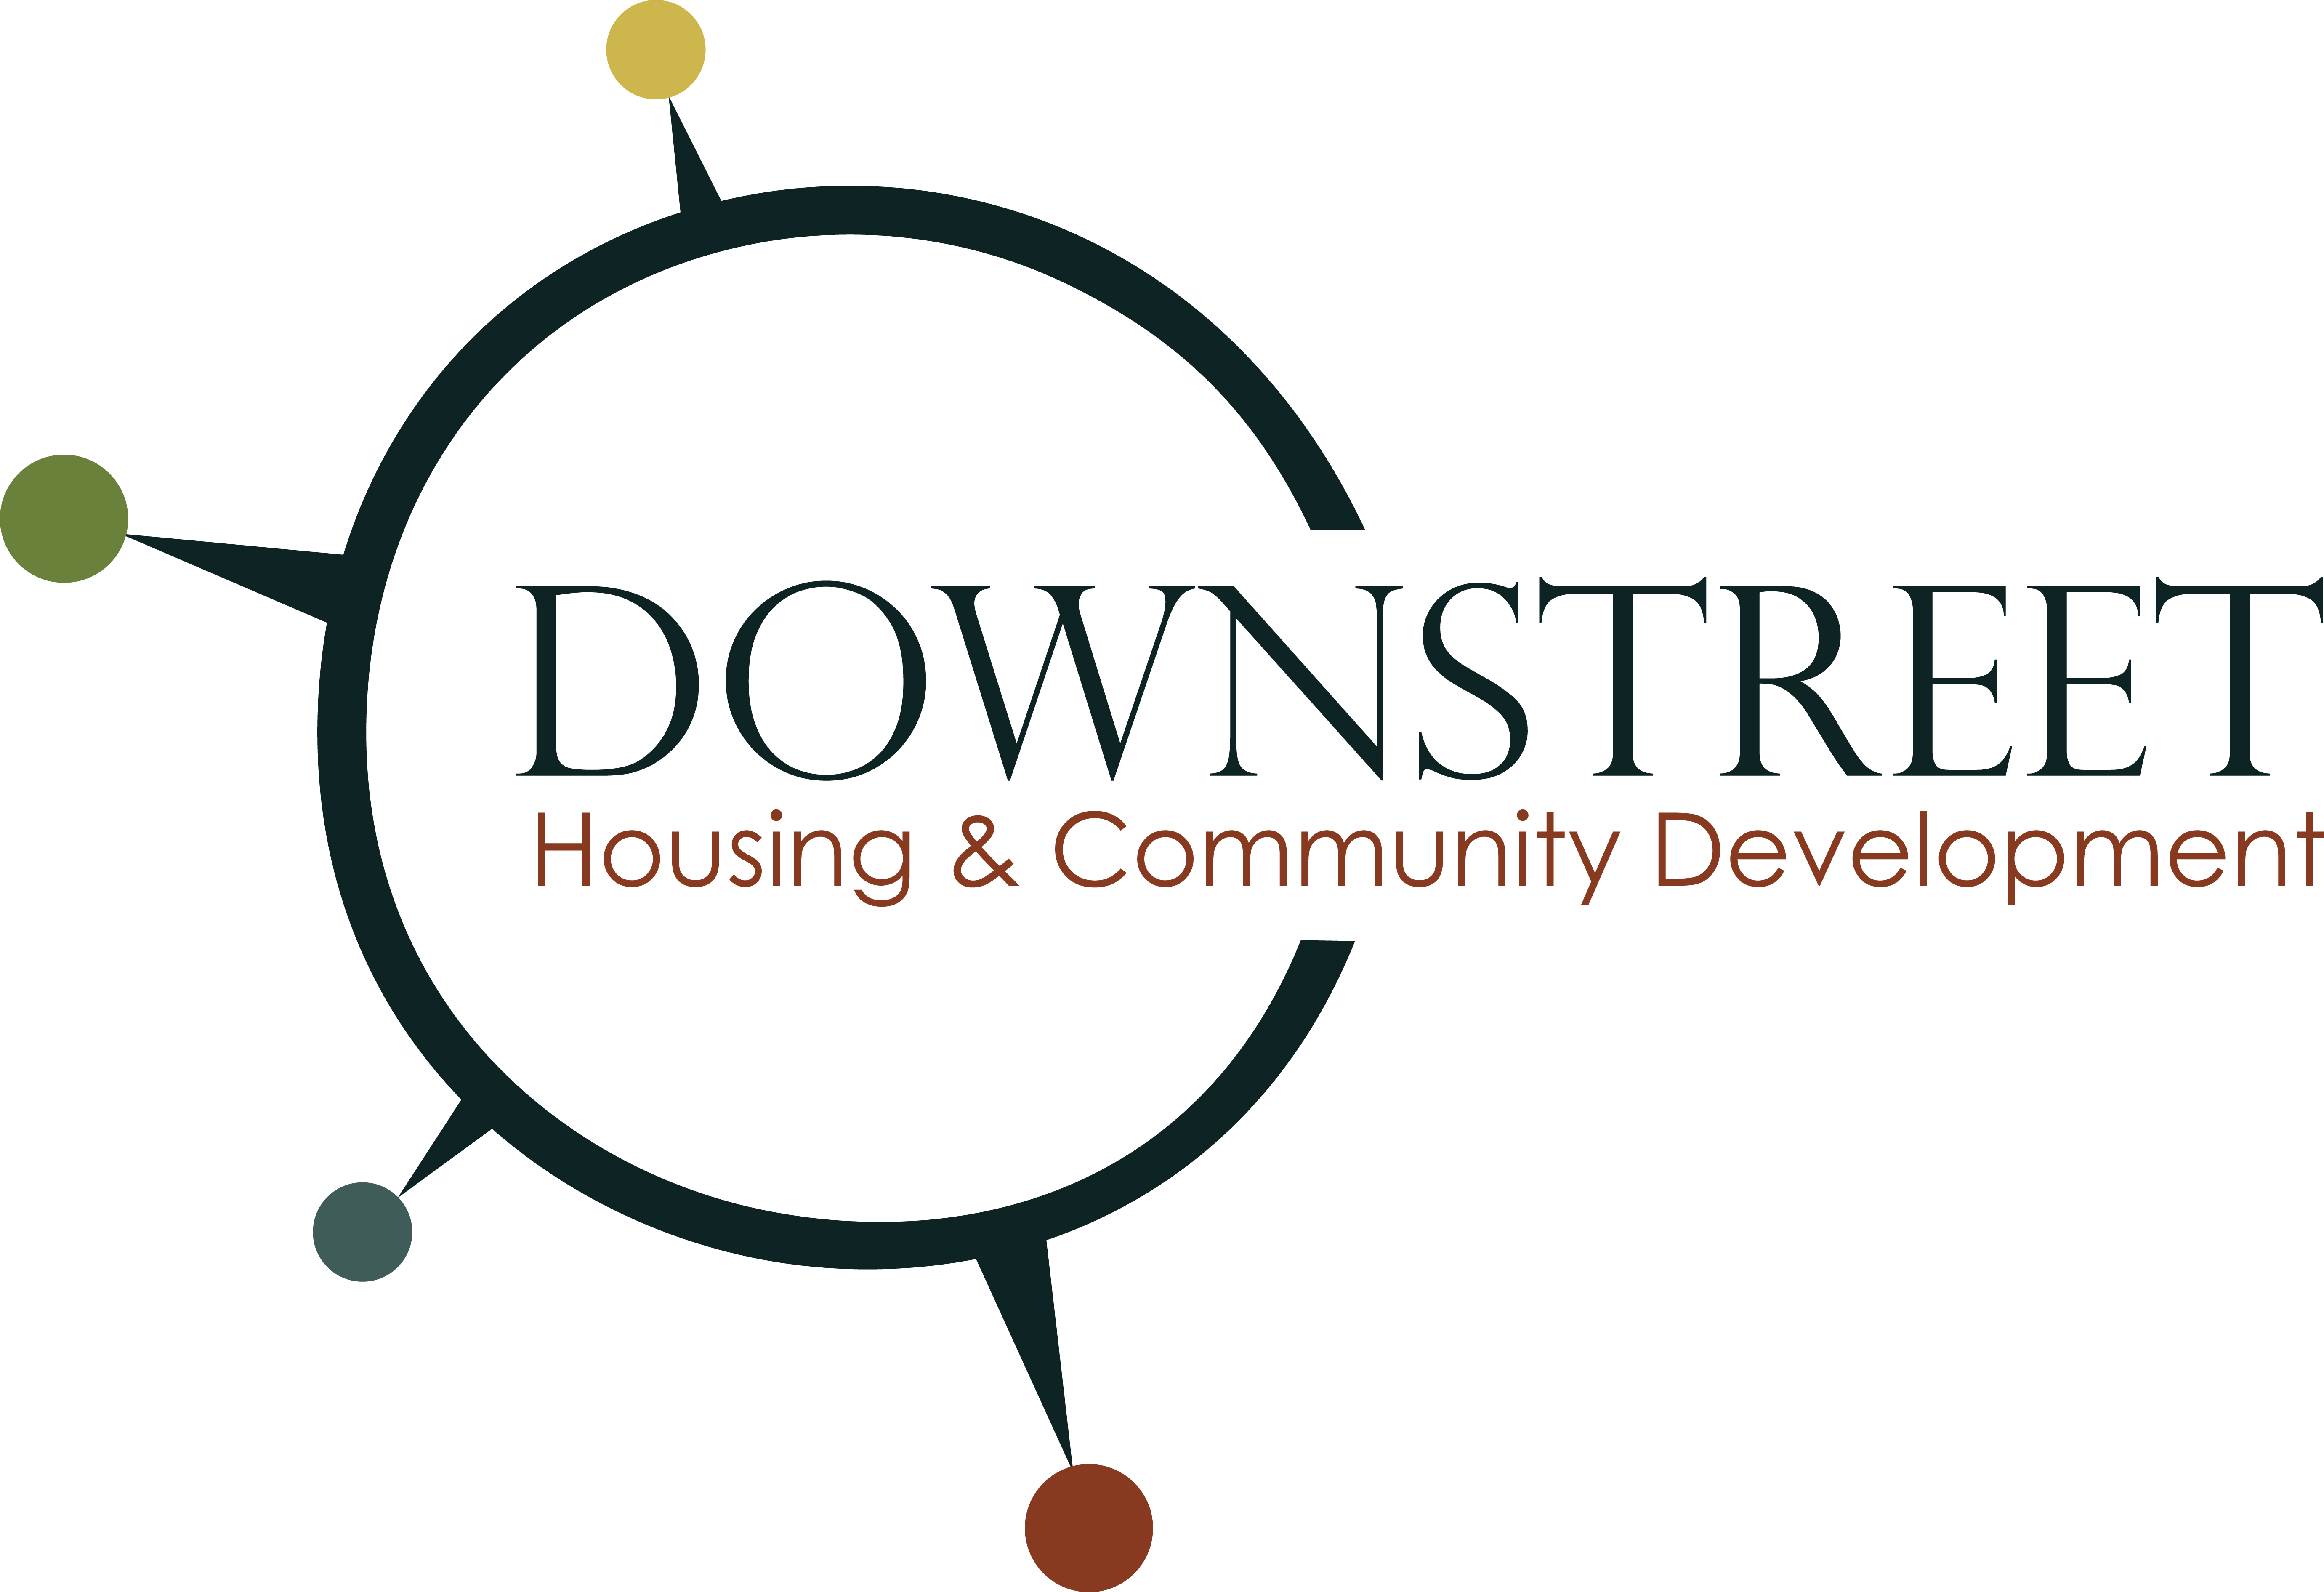 Downstreet housing and community development